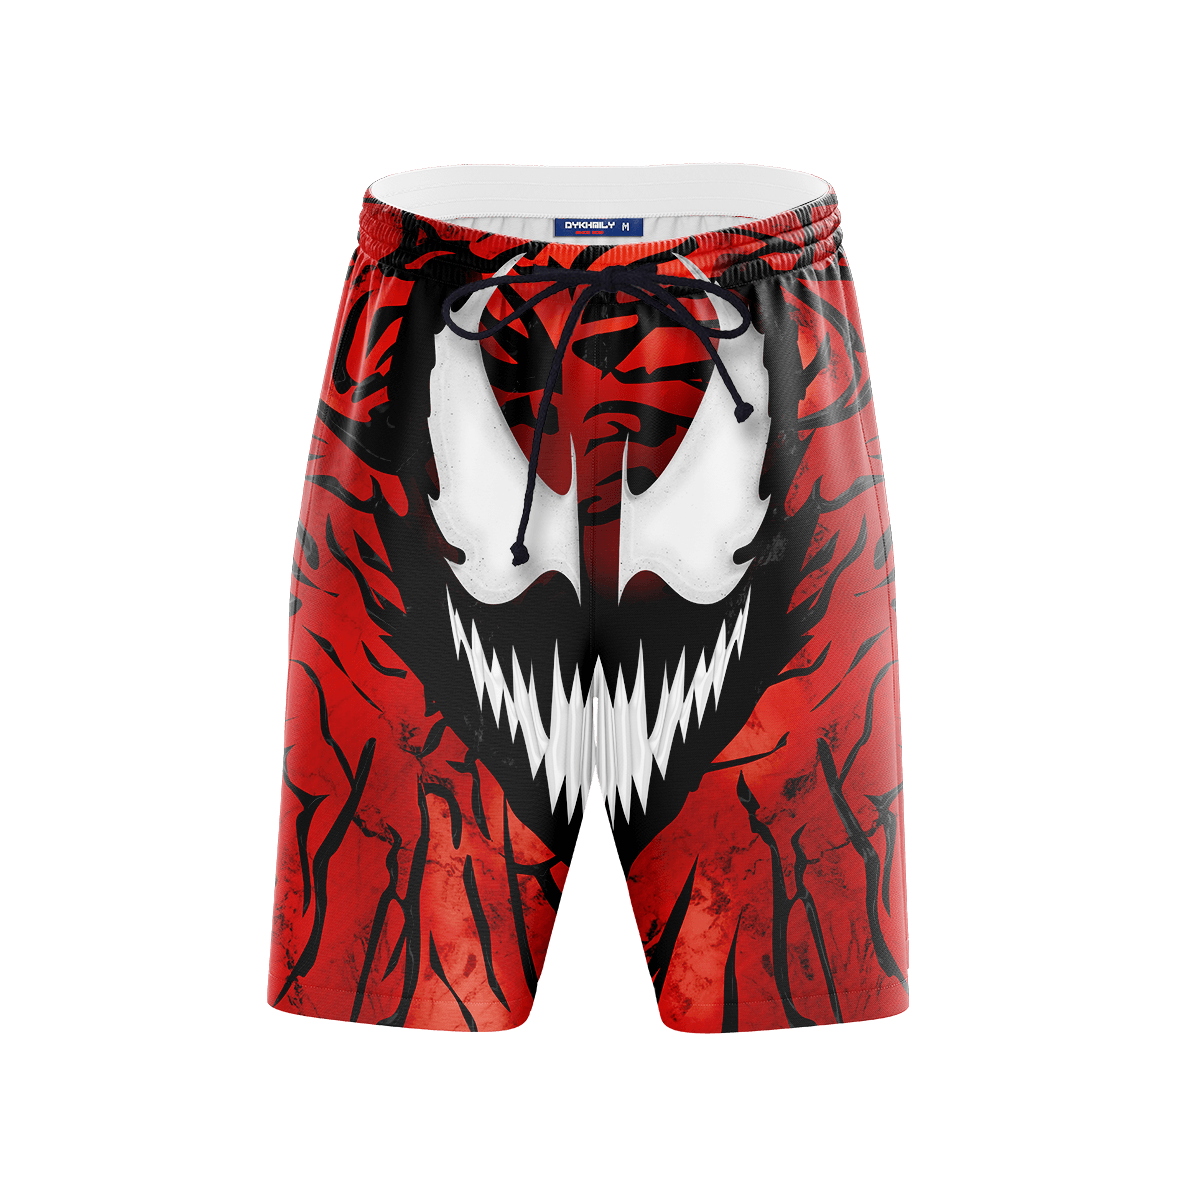 Carnage Beach Shorts FDM3107 S Official Anime Swimsuit Merch